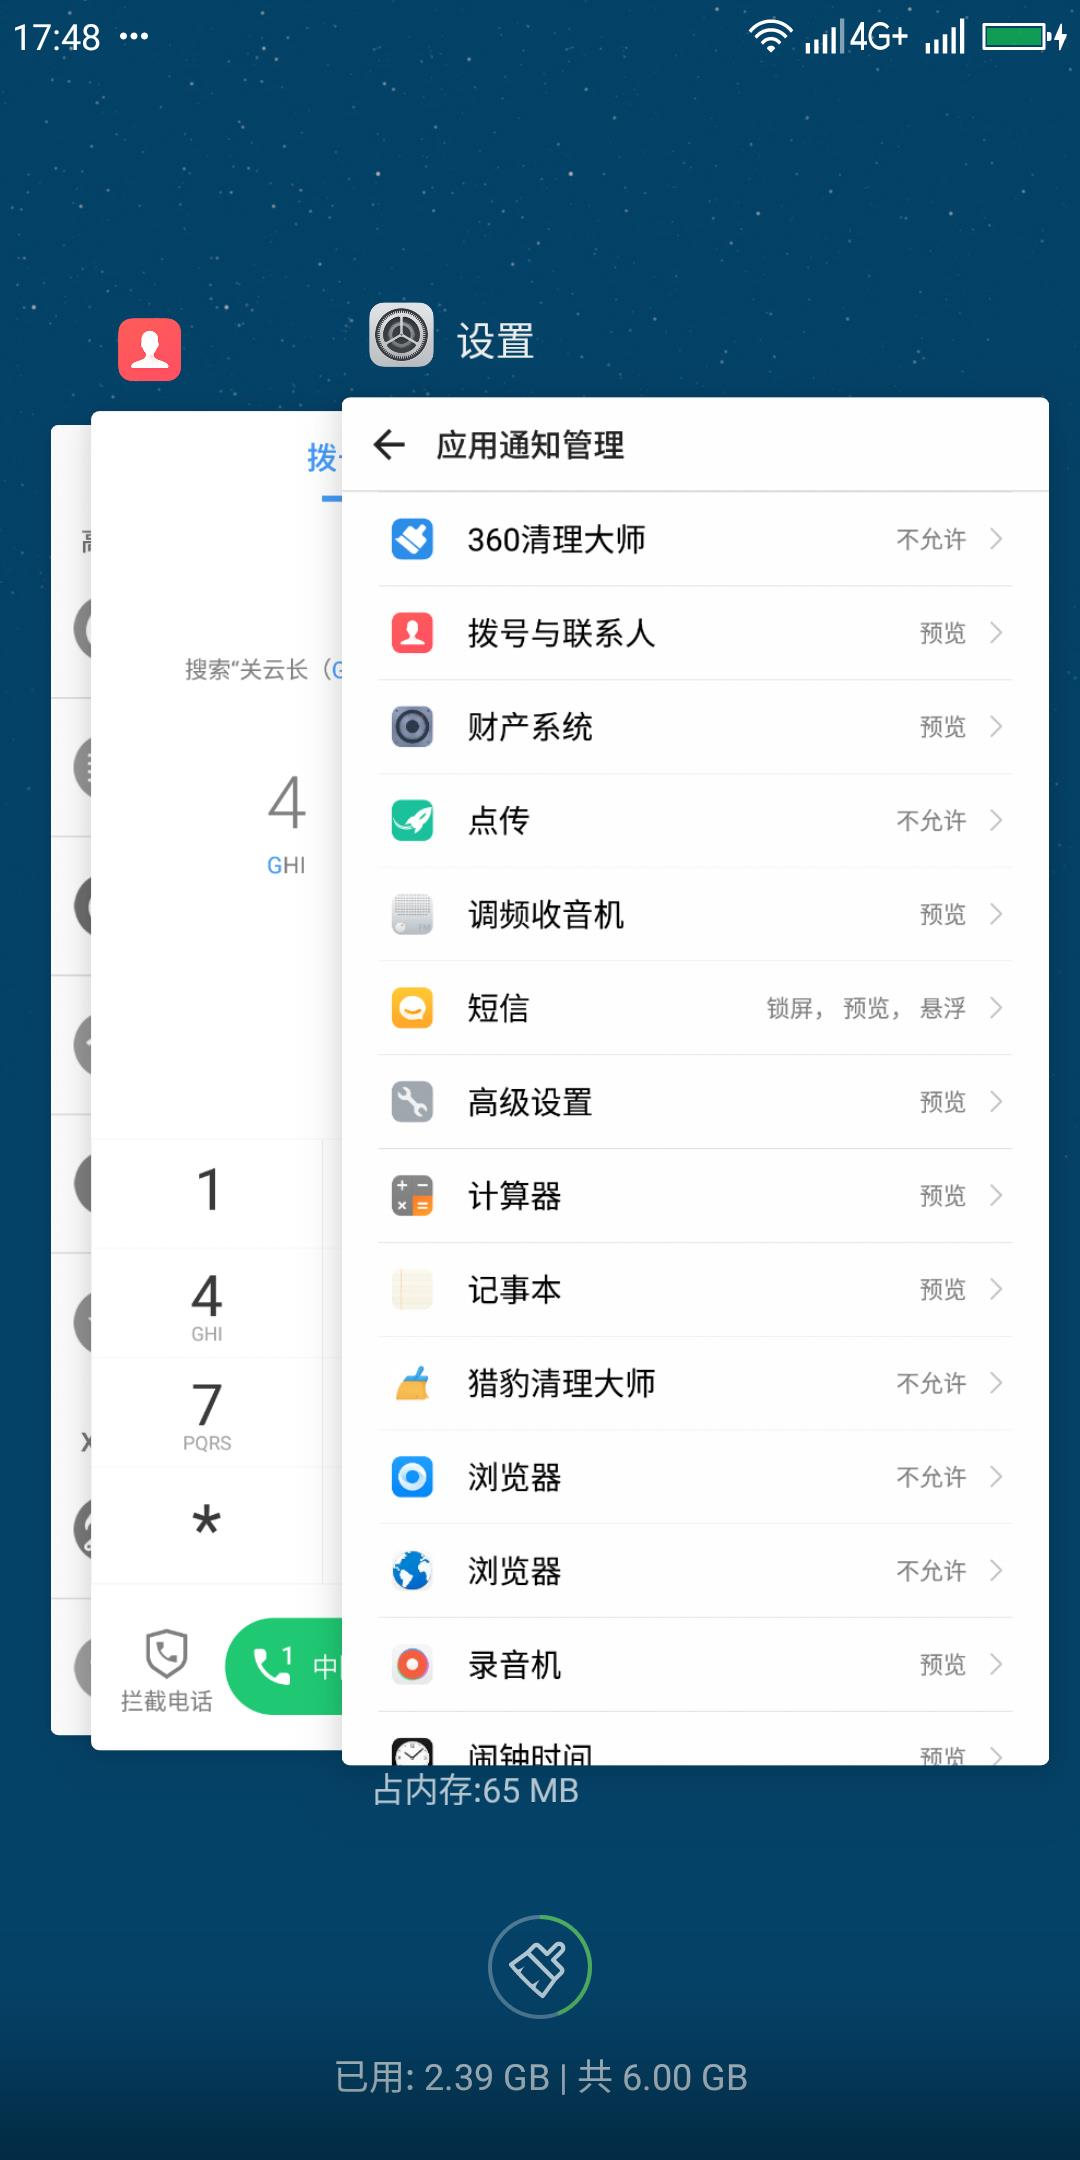 Screenshot_2018-11-28-21-25-51-067_com.miui.gallery.png